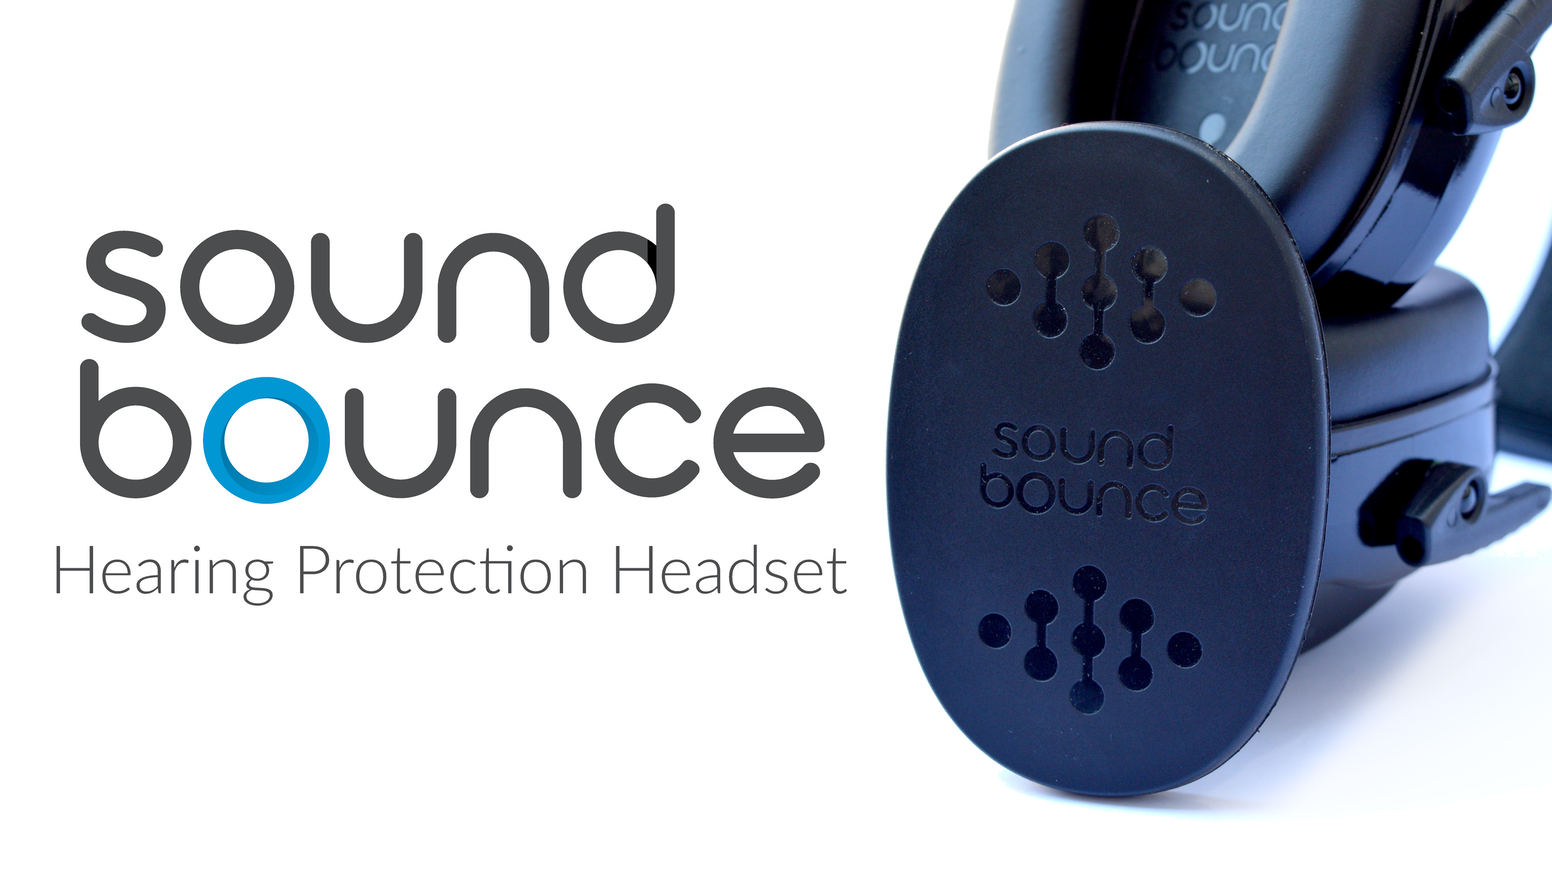 Sound Bounce is the first hearing protection to use smart material technology that absorbs damaging sounds.